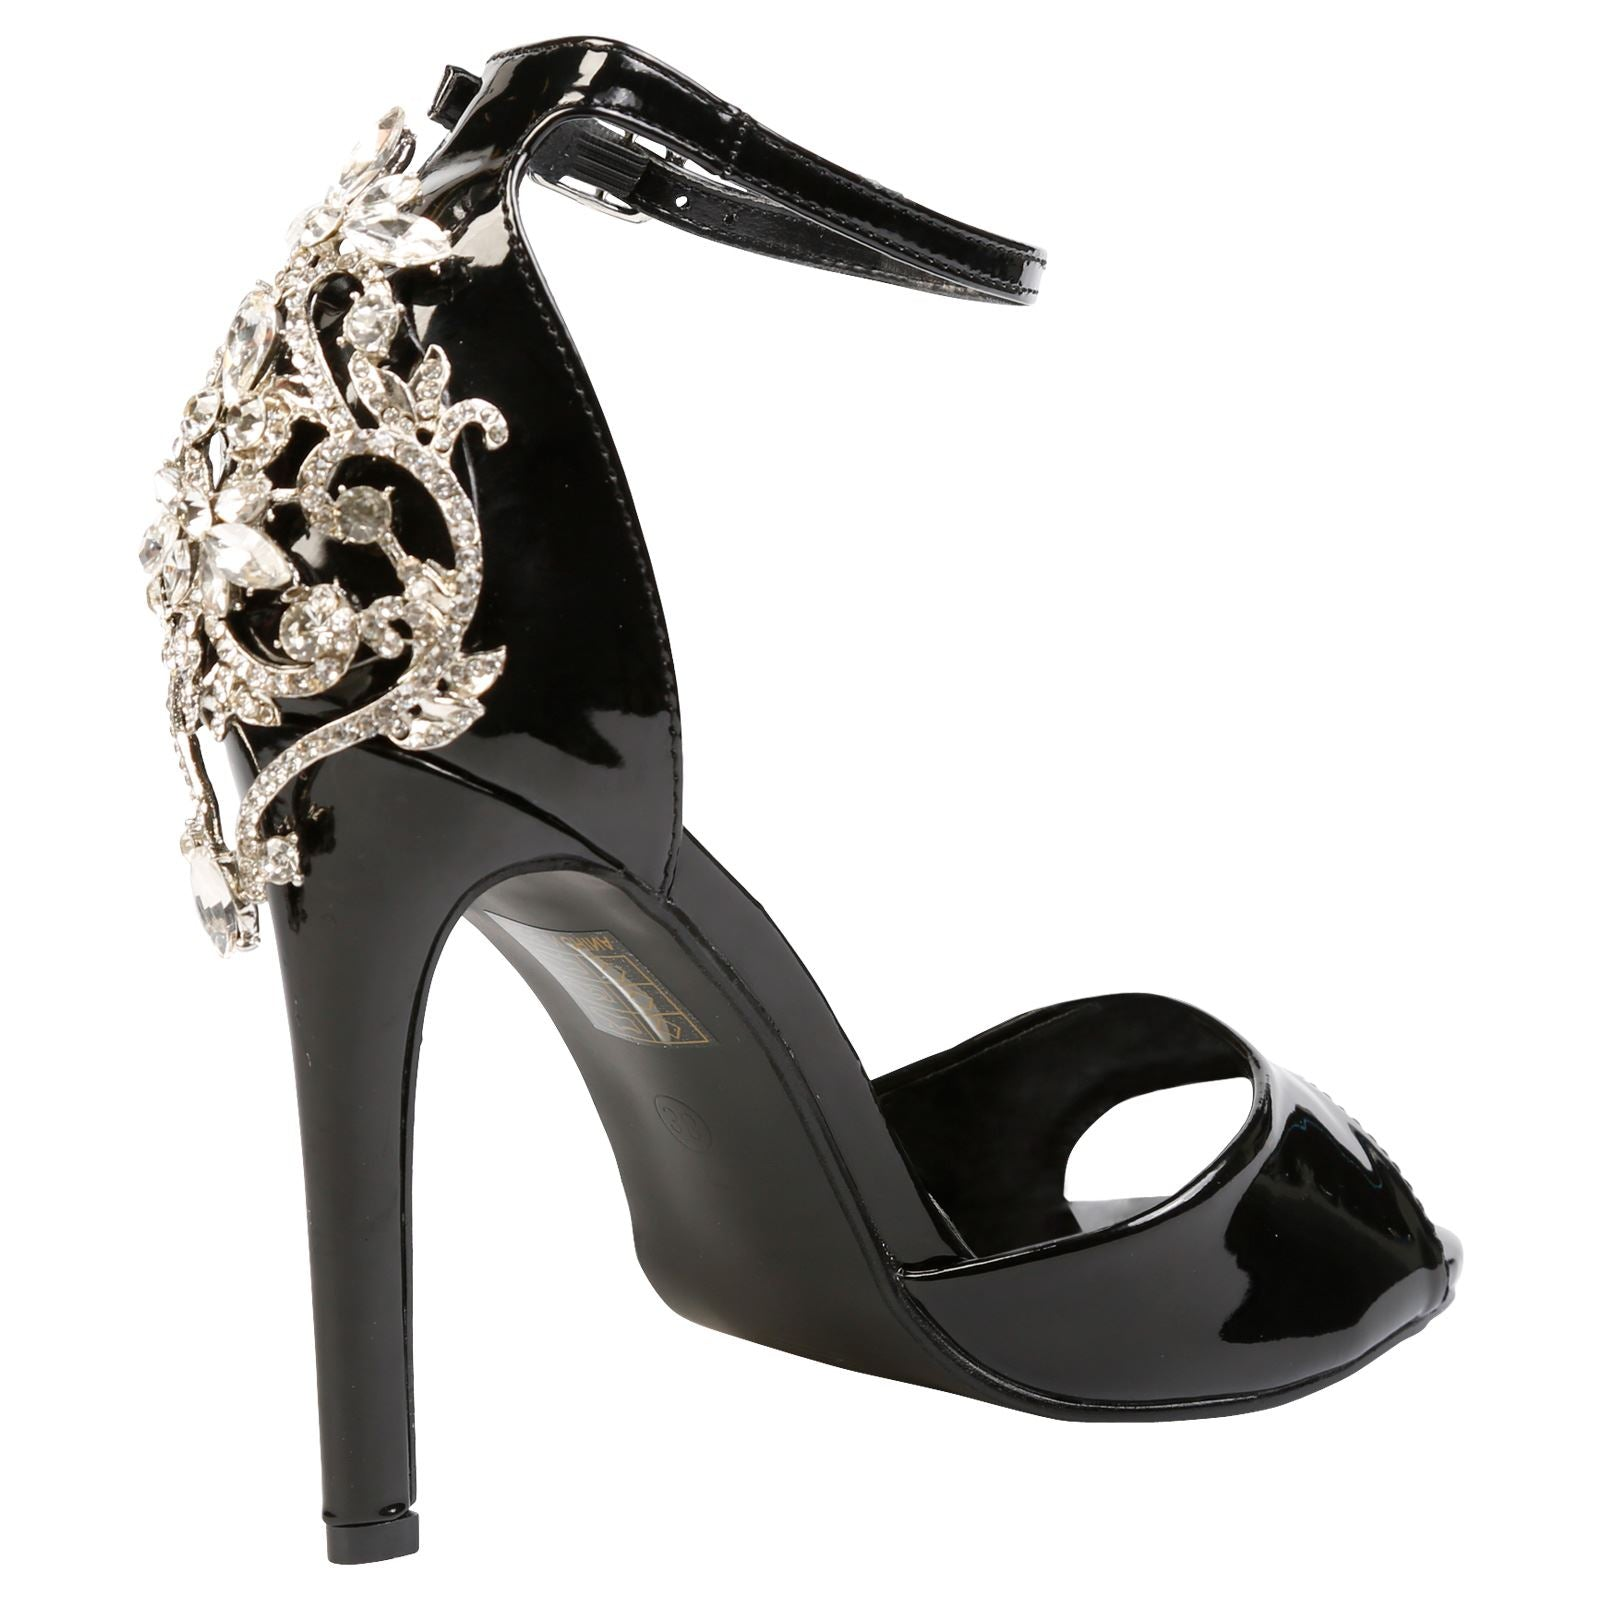 Sheila Diamante Embellished Sandals in Black Patent